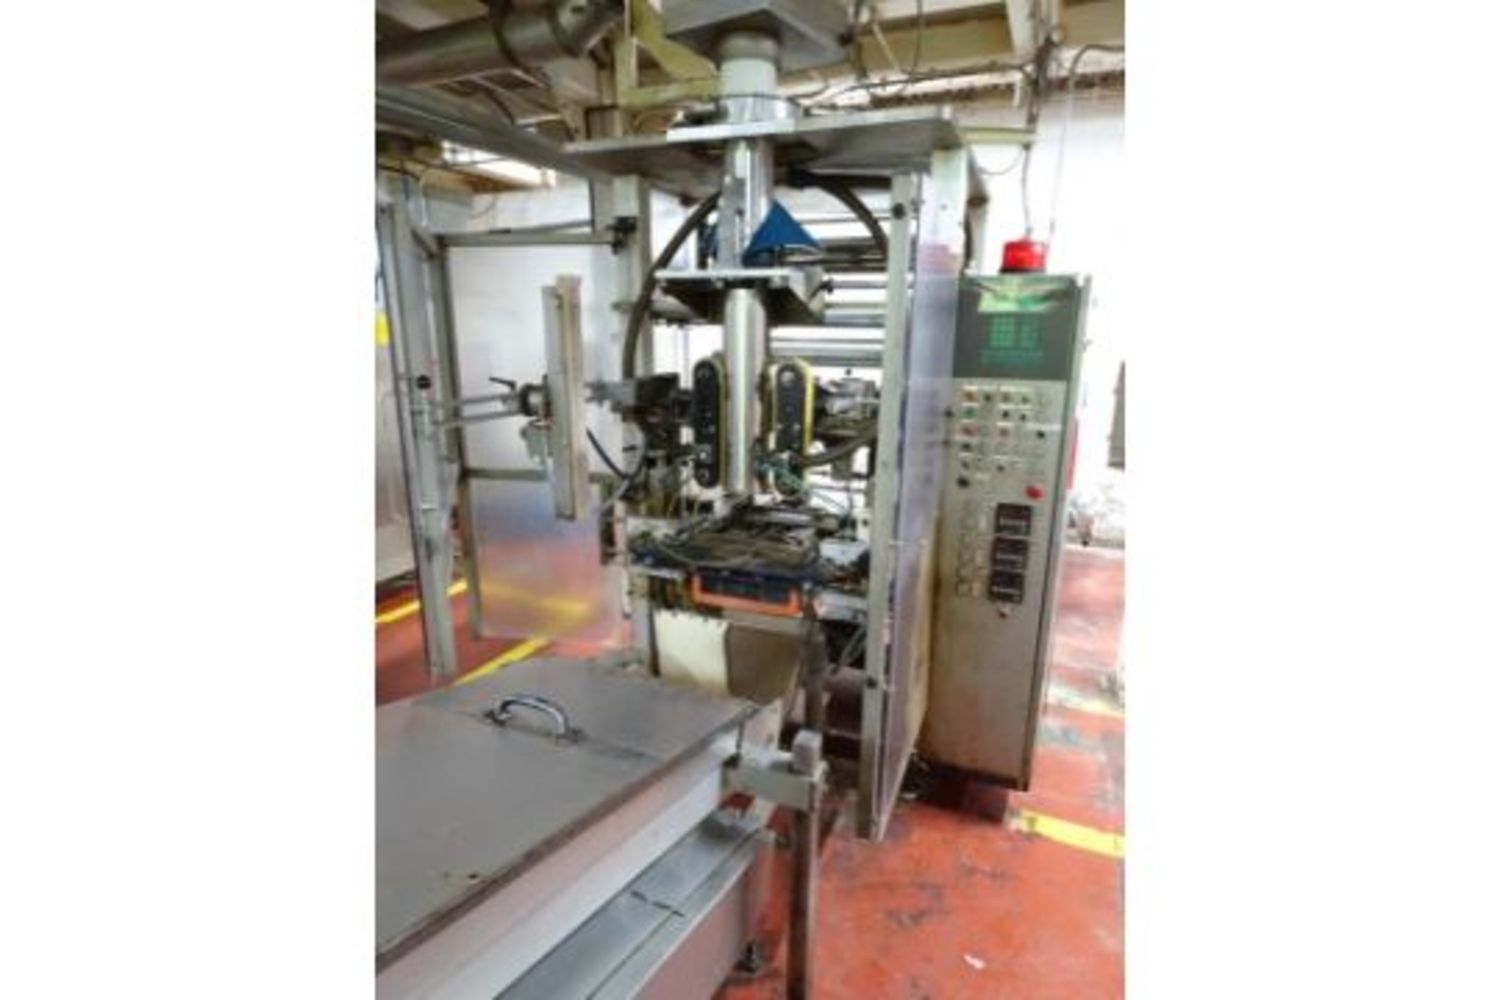 2- Day Auction - Cereal Manufacturing Plant - Process & Packaging Equipment - Large Quantity of MRO Assets - New Lots Added